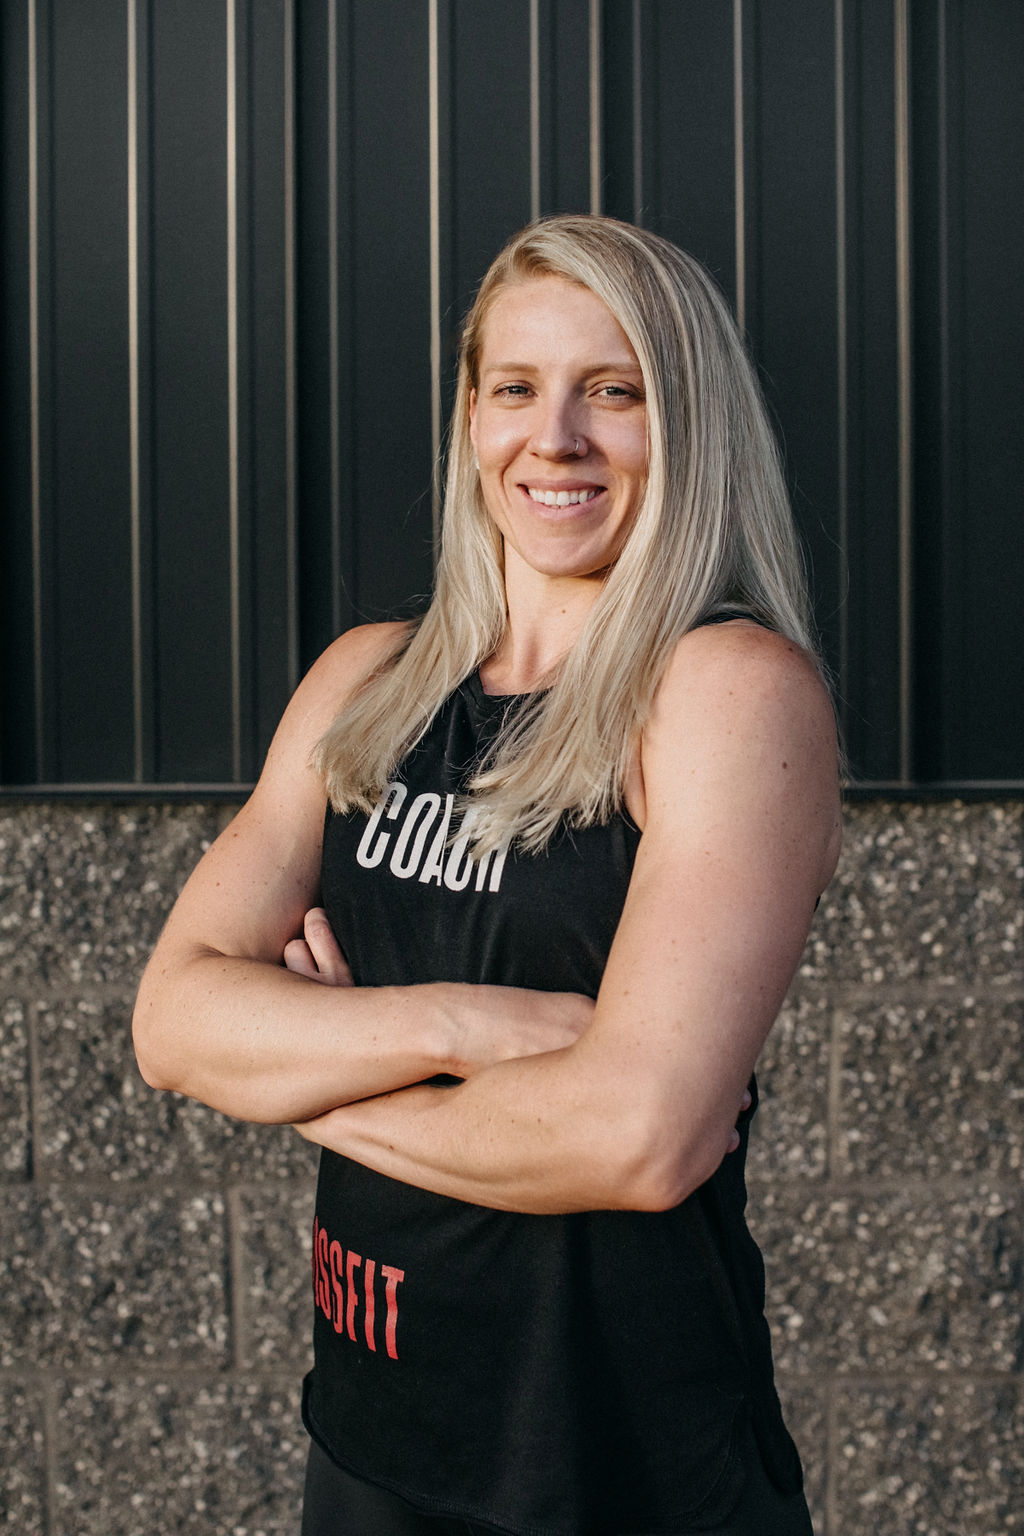 Shawna Weathers - Started CrossFit inEducation/Certifications:Favorite WOD:Why I love CrossFit, or how it has changed my life: